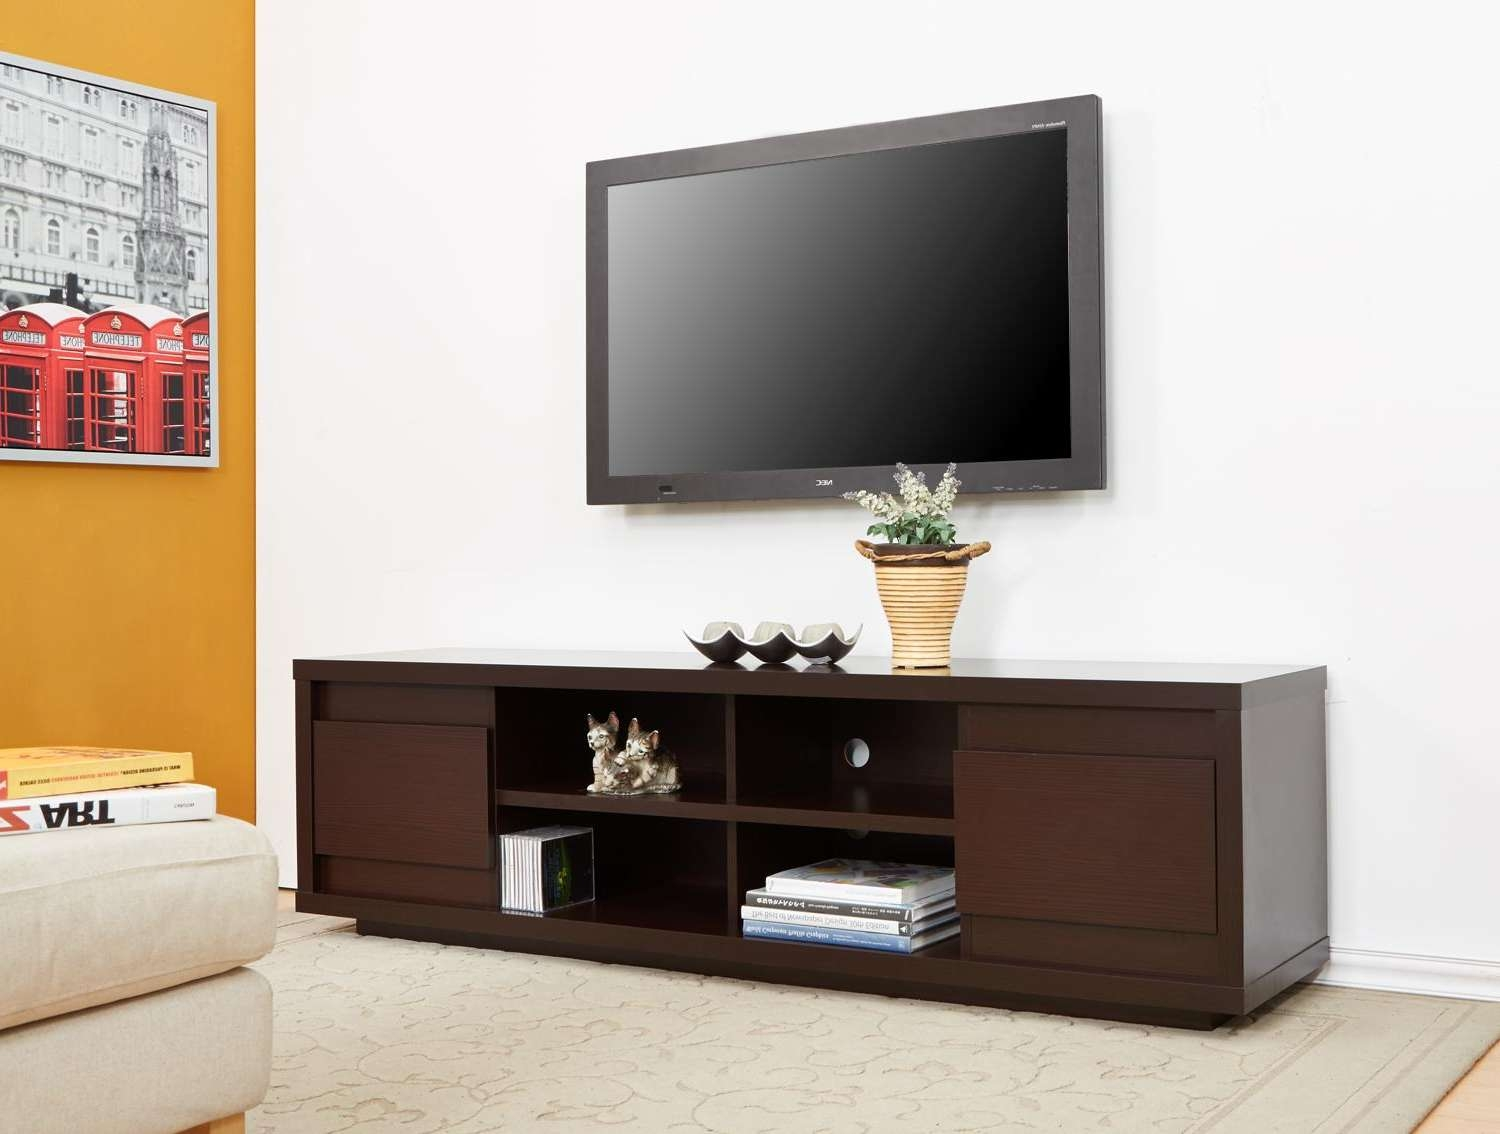 Tv Stand : 49 Impressive Tv Stand With Storage Drawers Photos With Storage Tv Stands (View 11 of 15)